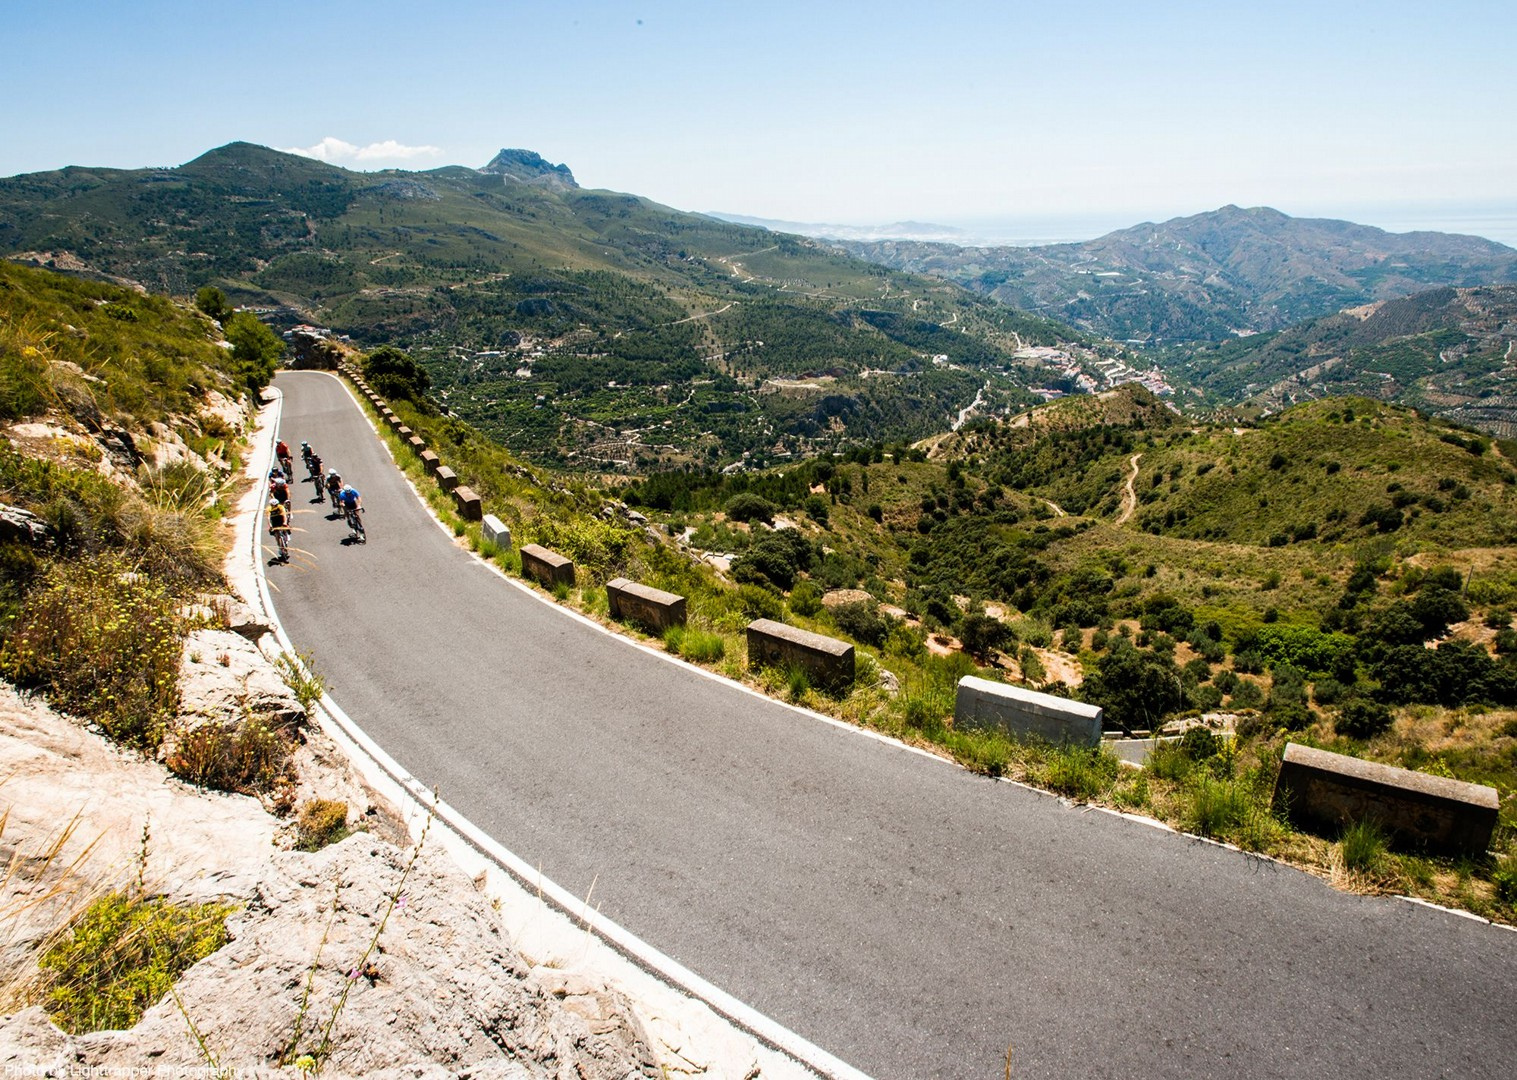 road-holiday-saddle-skedaddle-cycling-holidays-to-southern-spain.jpg - Southern Spain - Sierra Nevada and Granada - Guided Road Cycling Holiday - Road Cycling